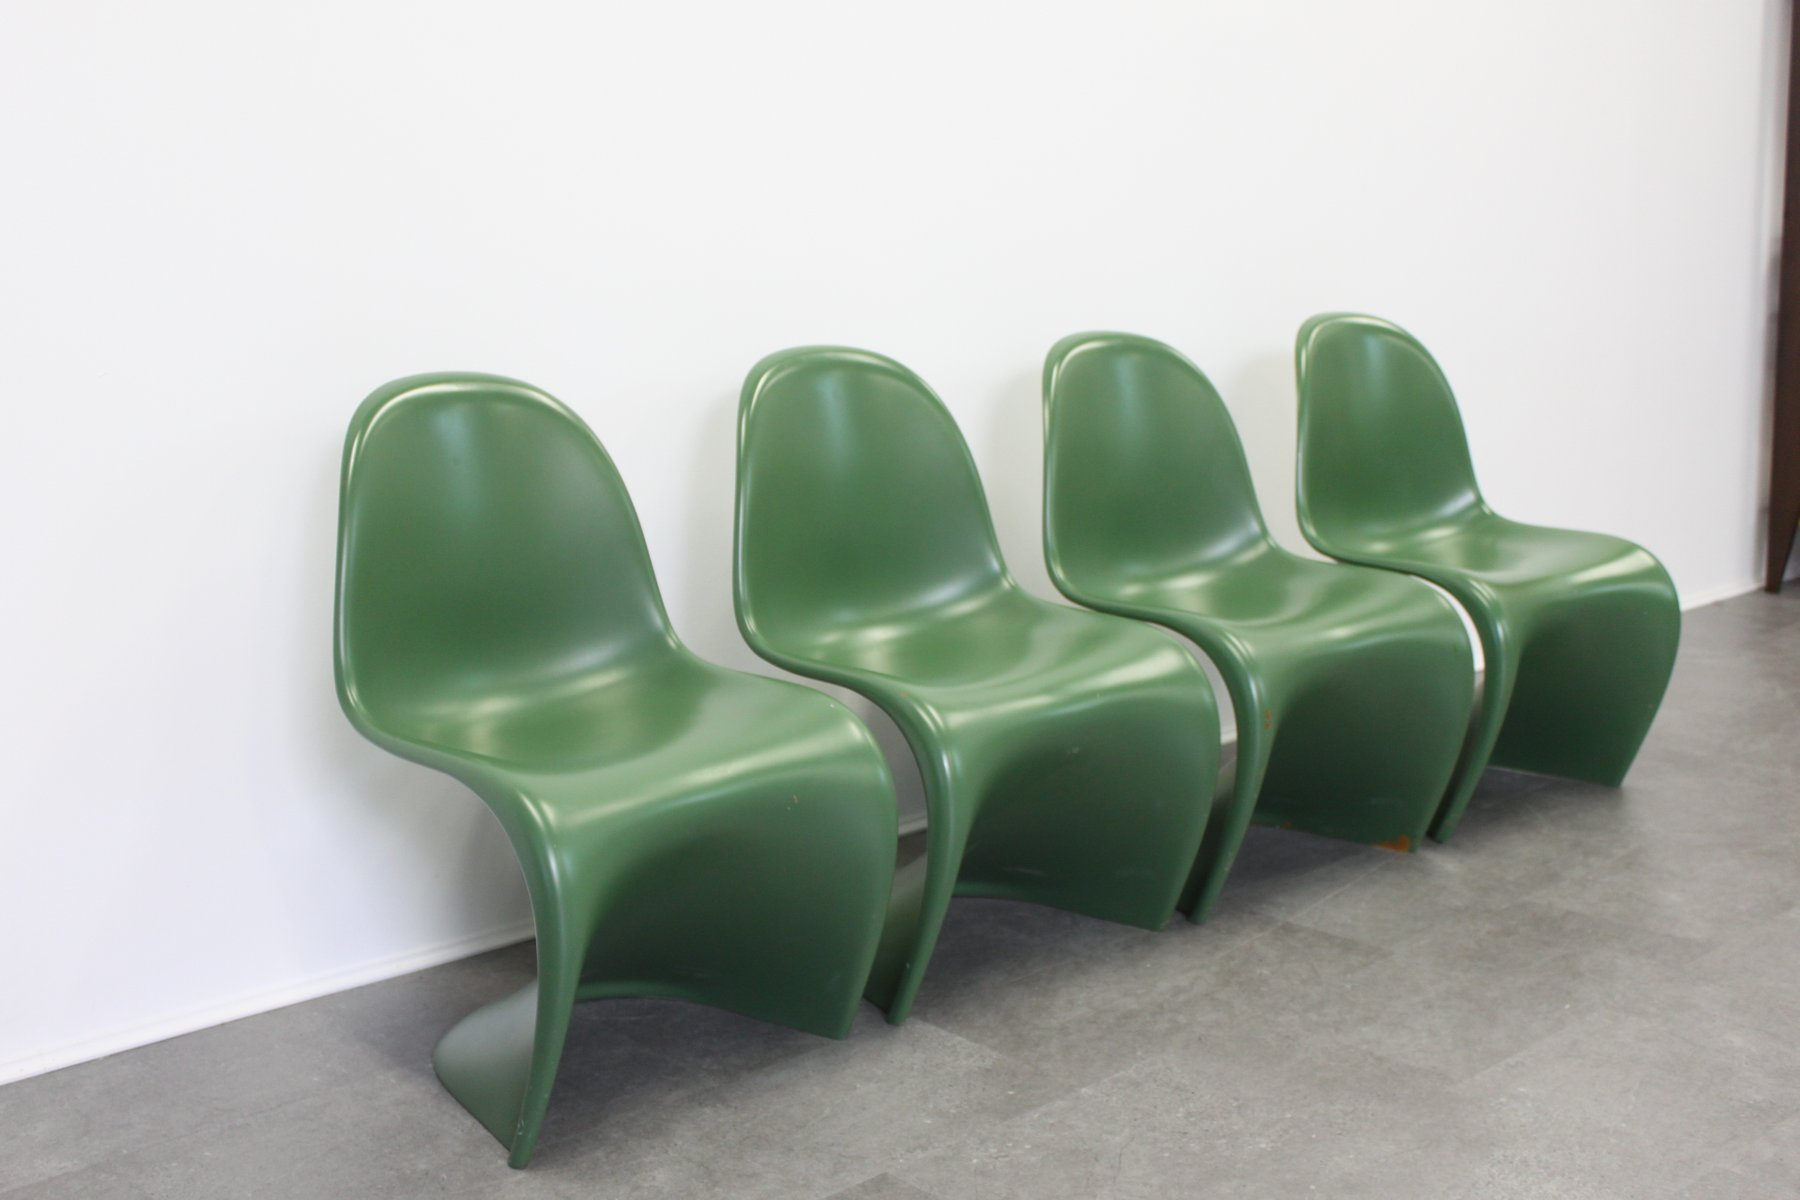 vintage matte green baydur chairs by verner panton for vitra set of 4 for sale at pamono. Black Bedroom Furniture Sets. Home Design Ideas